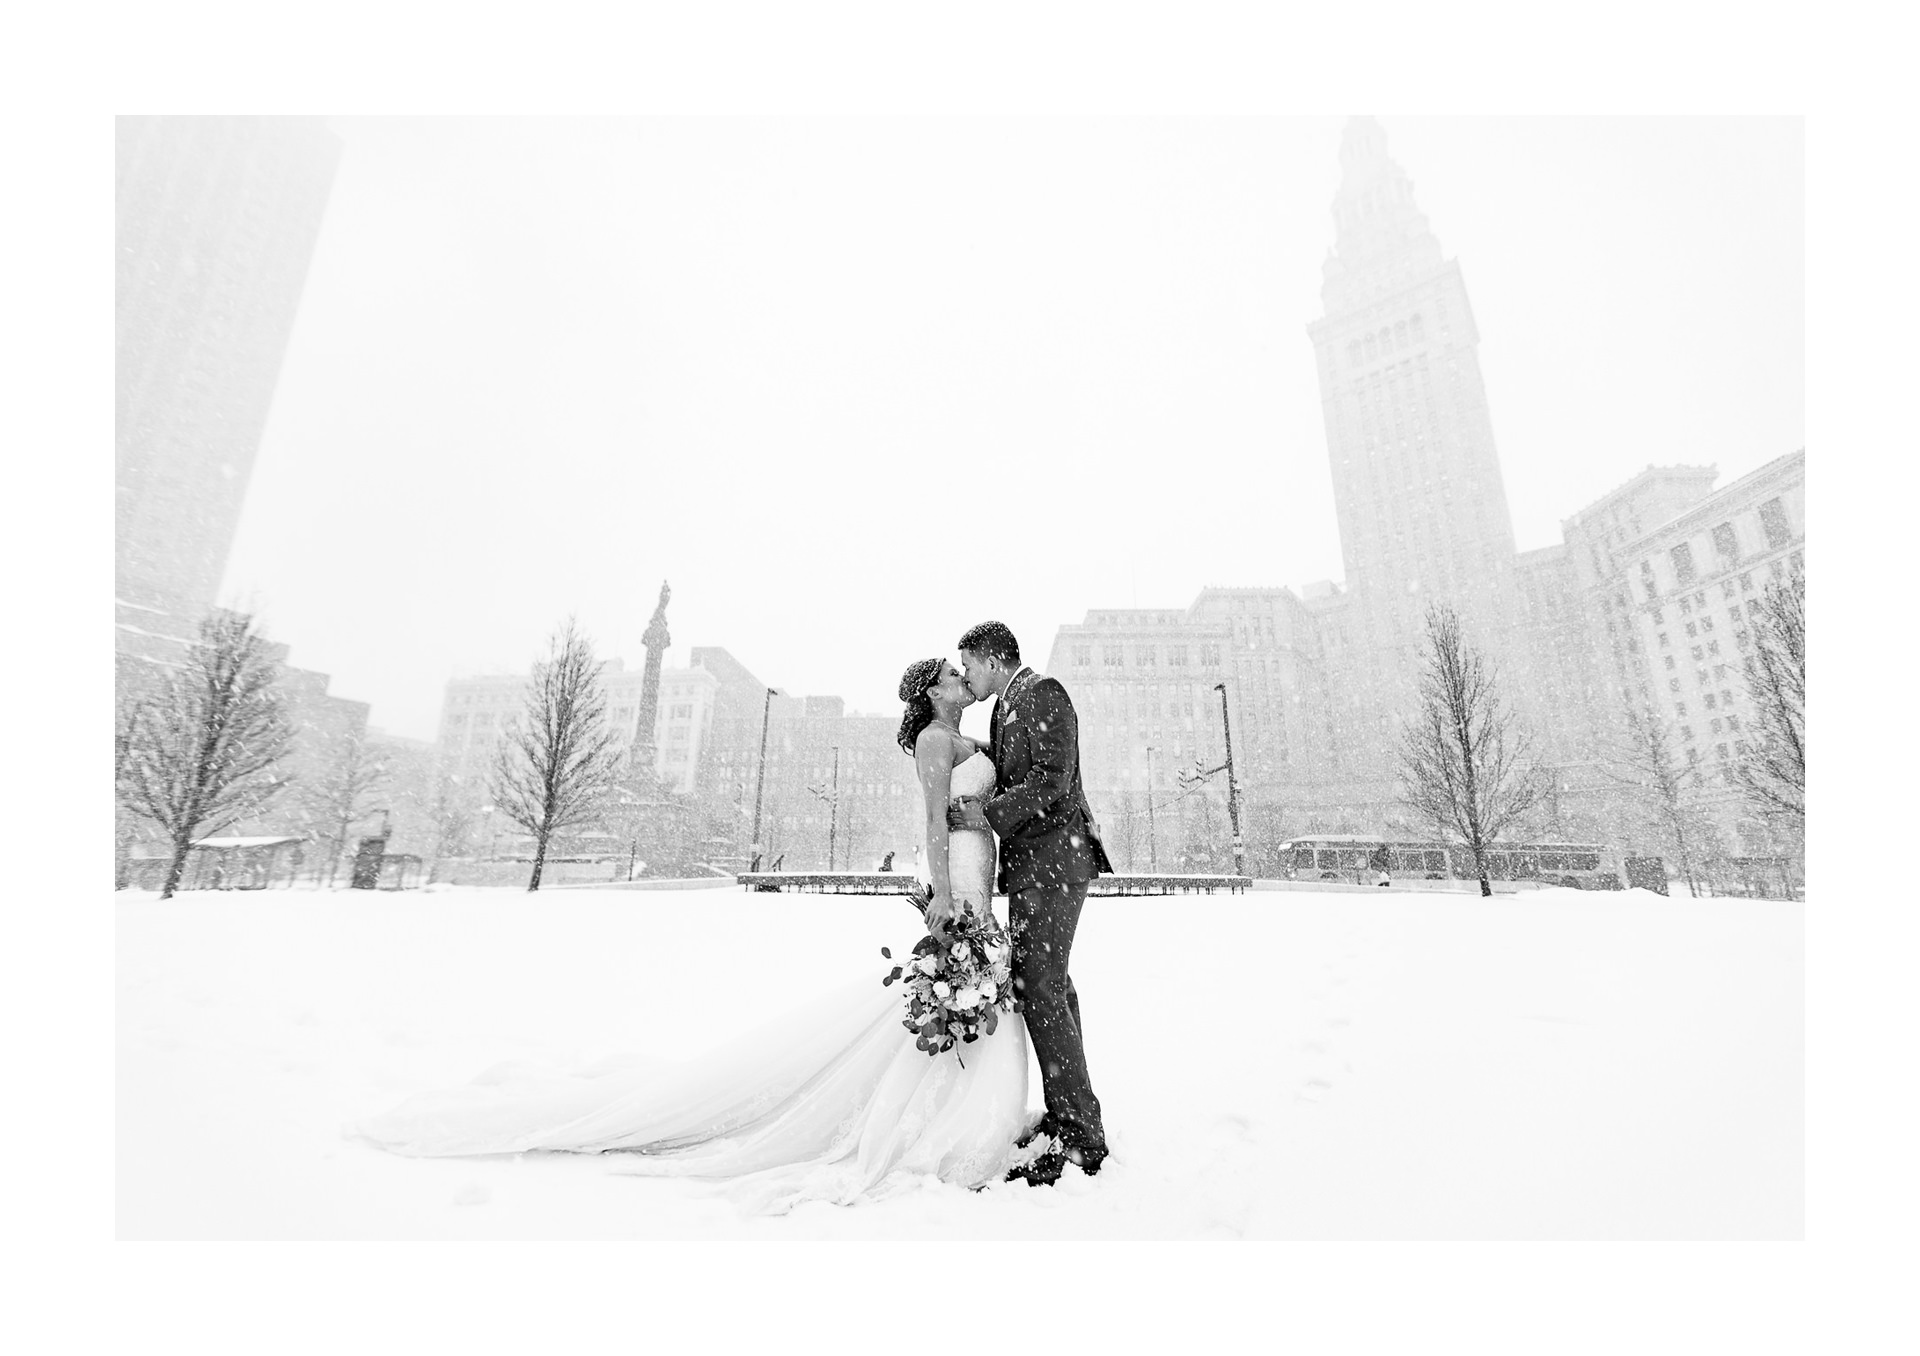 Windows on the River Winter Wedding Photographer in Cleveland 65.jpg